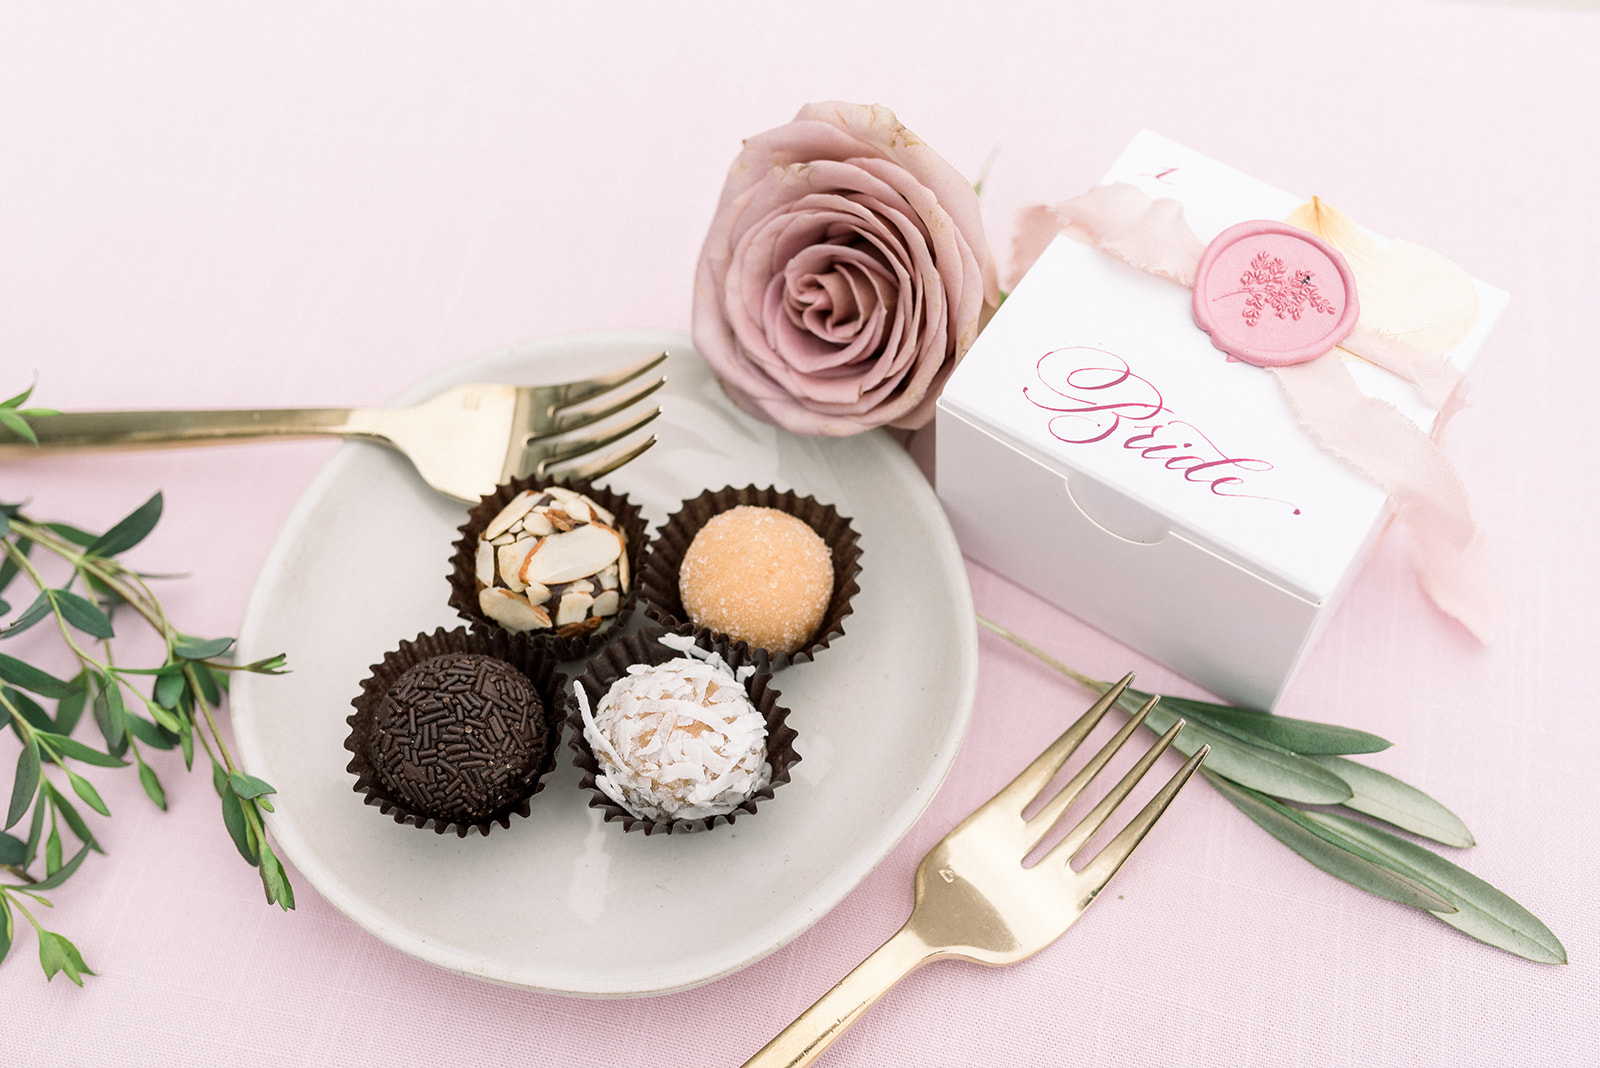 Unique wedding favor, truffles packaged sweetly into each guests custom calligraphy gift box